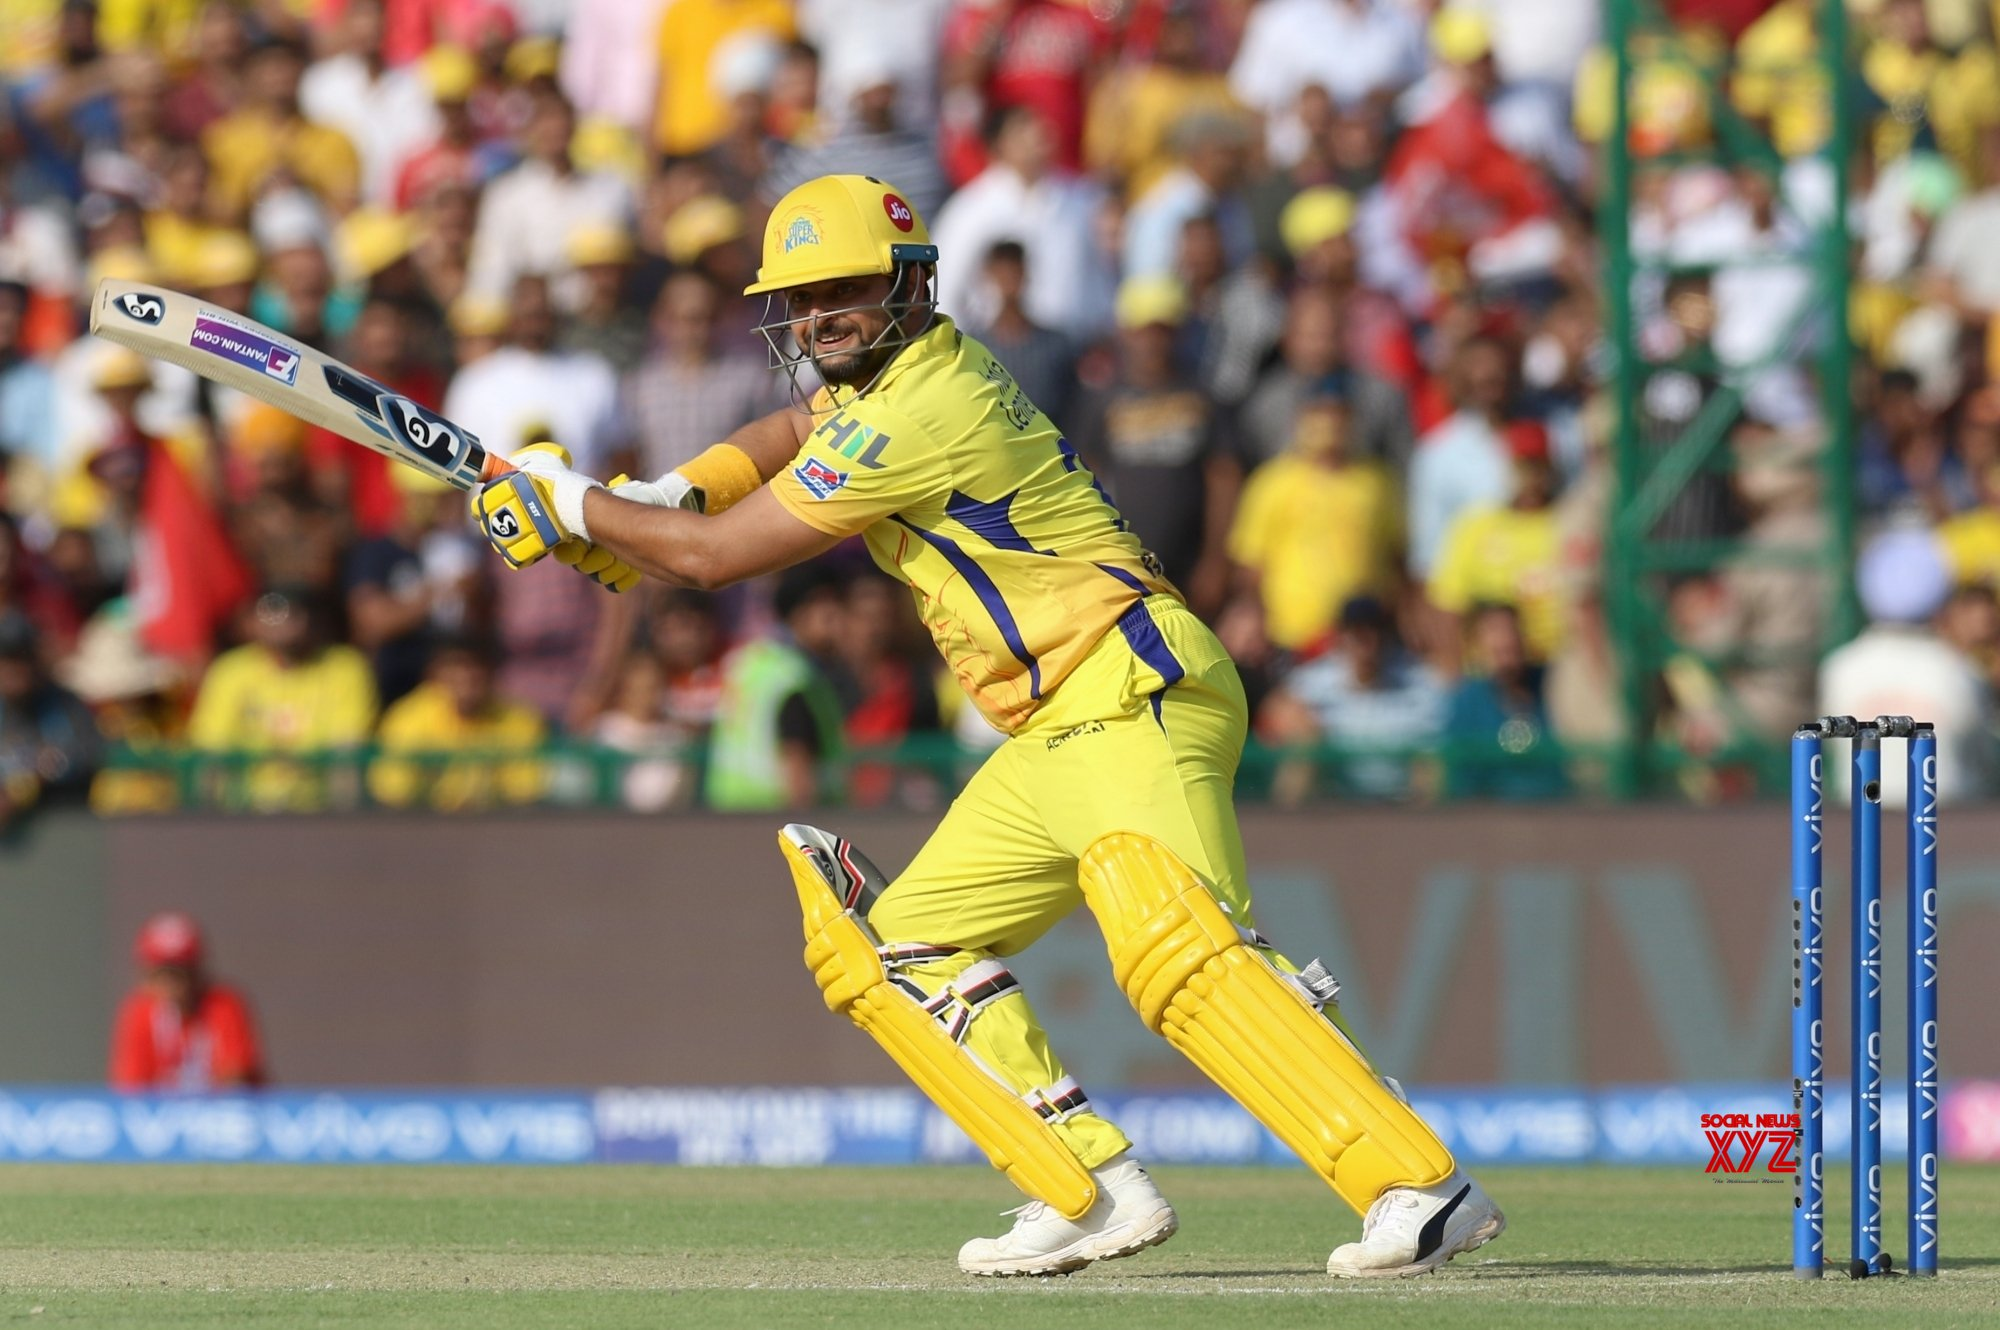 Dhoni is not just friend but a guiding force and mentor: Raina